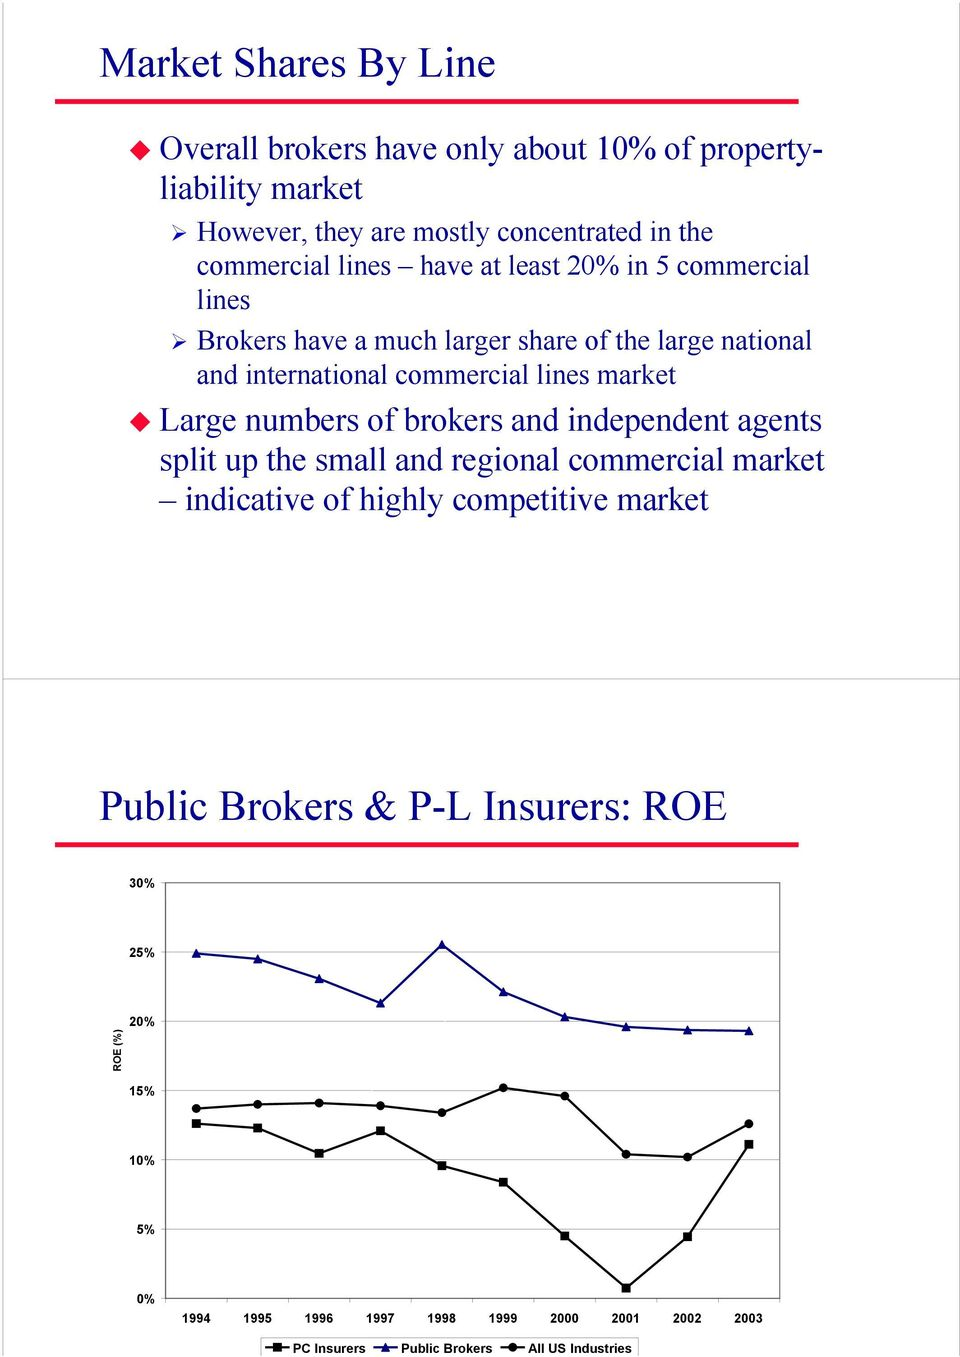 international commercial lines market Large numbers of brokers and independent agents split up the small and regional commercial market indicative